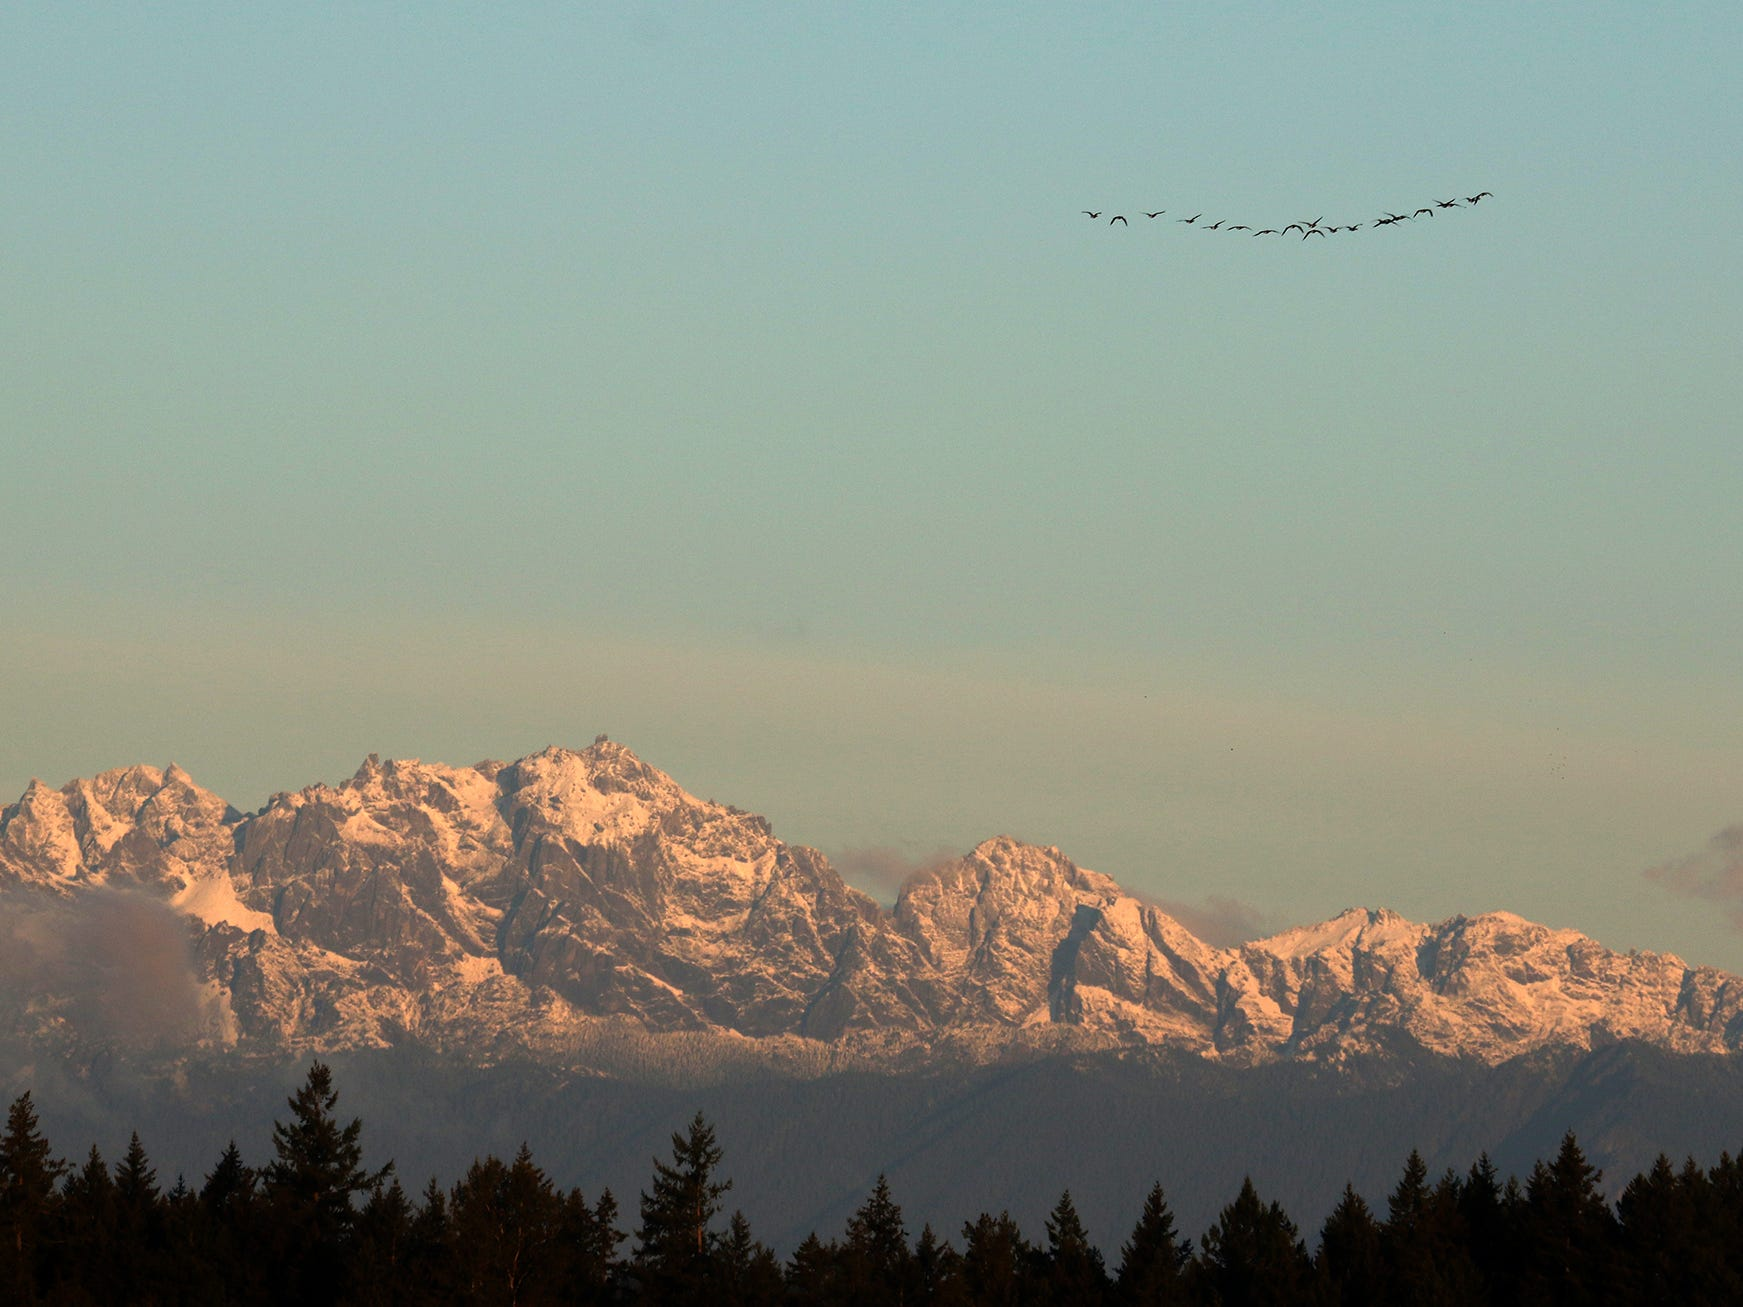 Snow covers the tops of the Olympic Mountains as seen from East Bremerton on Saturday, October 6, 2018.